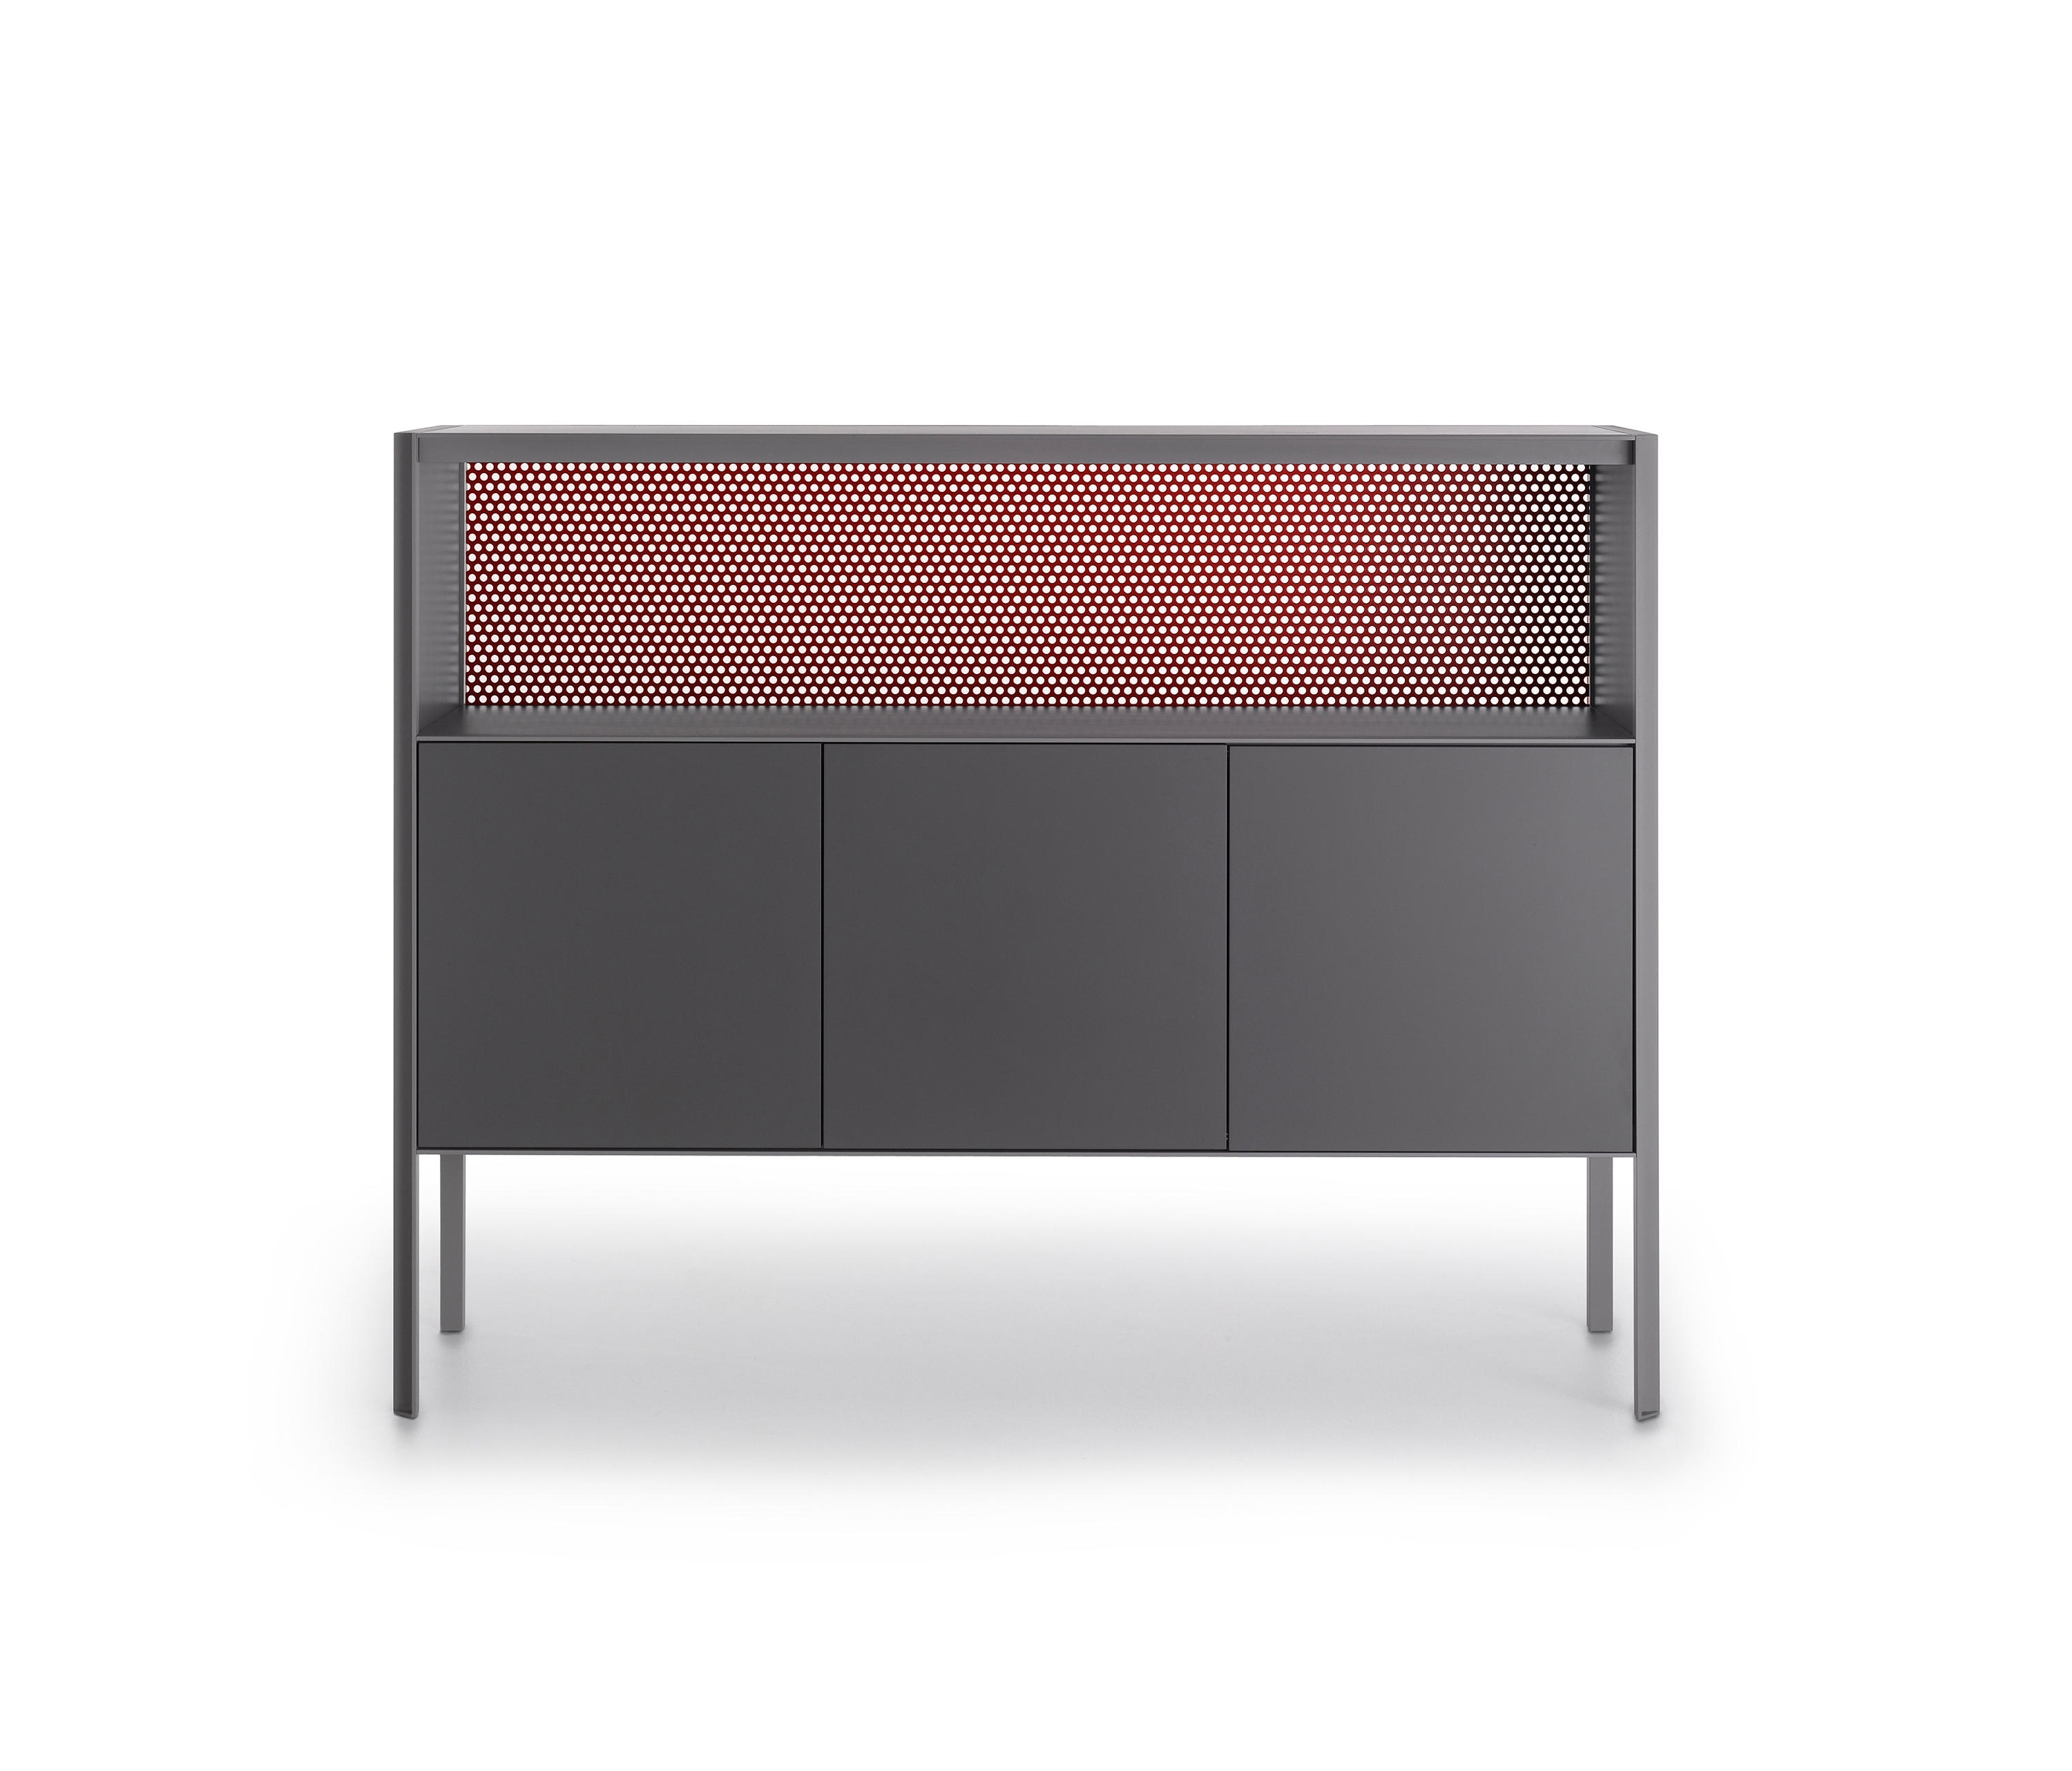 Heron - Sideboards From Mdf Italia | Architonic regarding 3-Door 3-Drawer Metal Inserts Sideboards (Image 10 of 30)